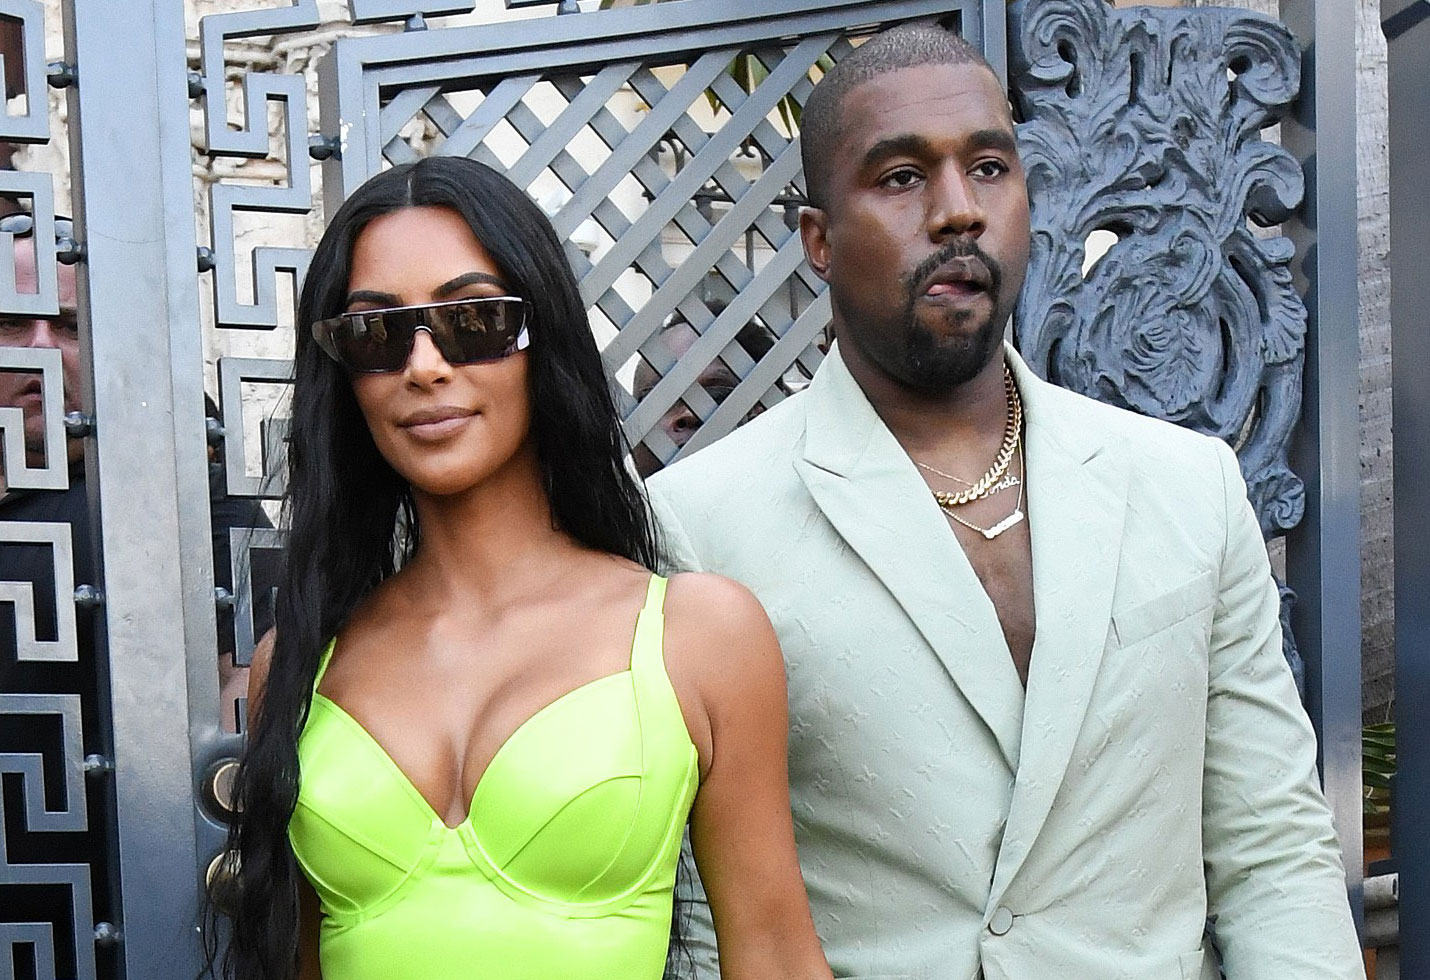 Kanye and Kim No Longer Interested In $14M Miami Beach Condo Following Privacy Concerns